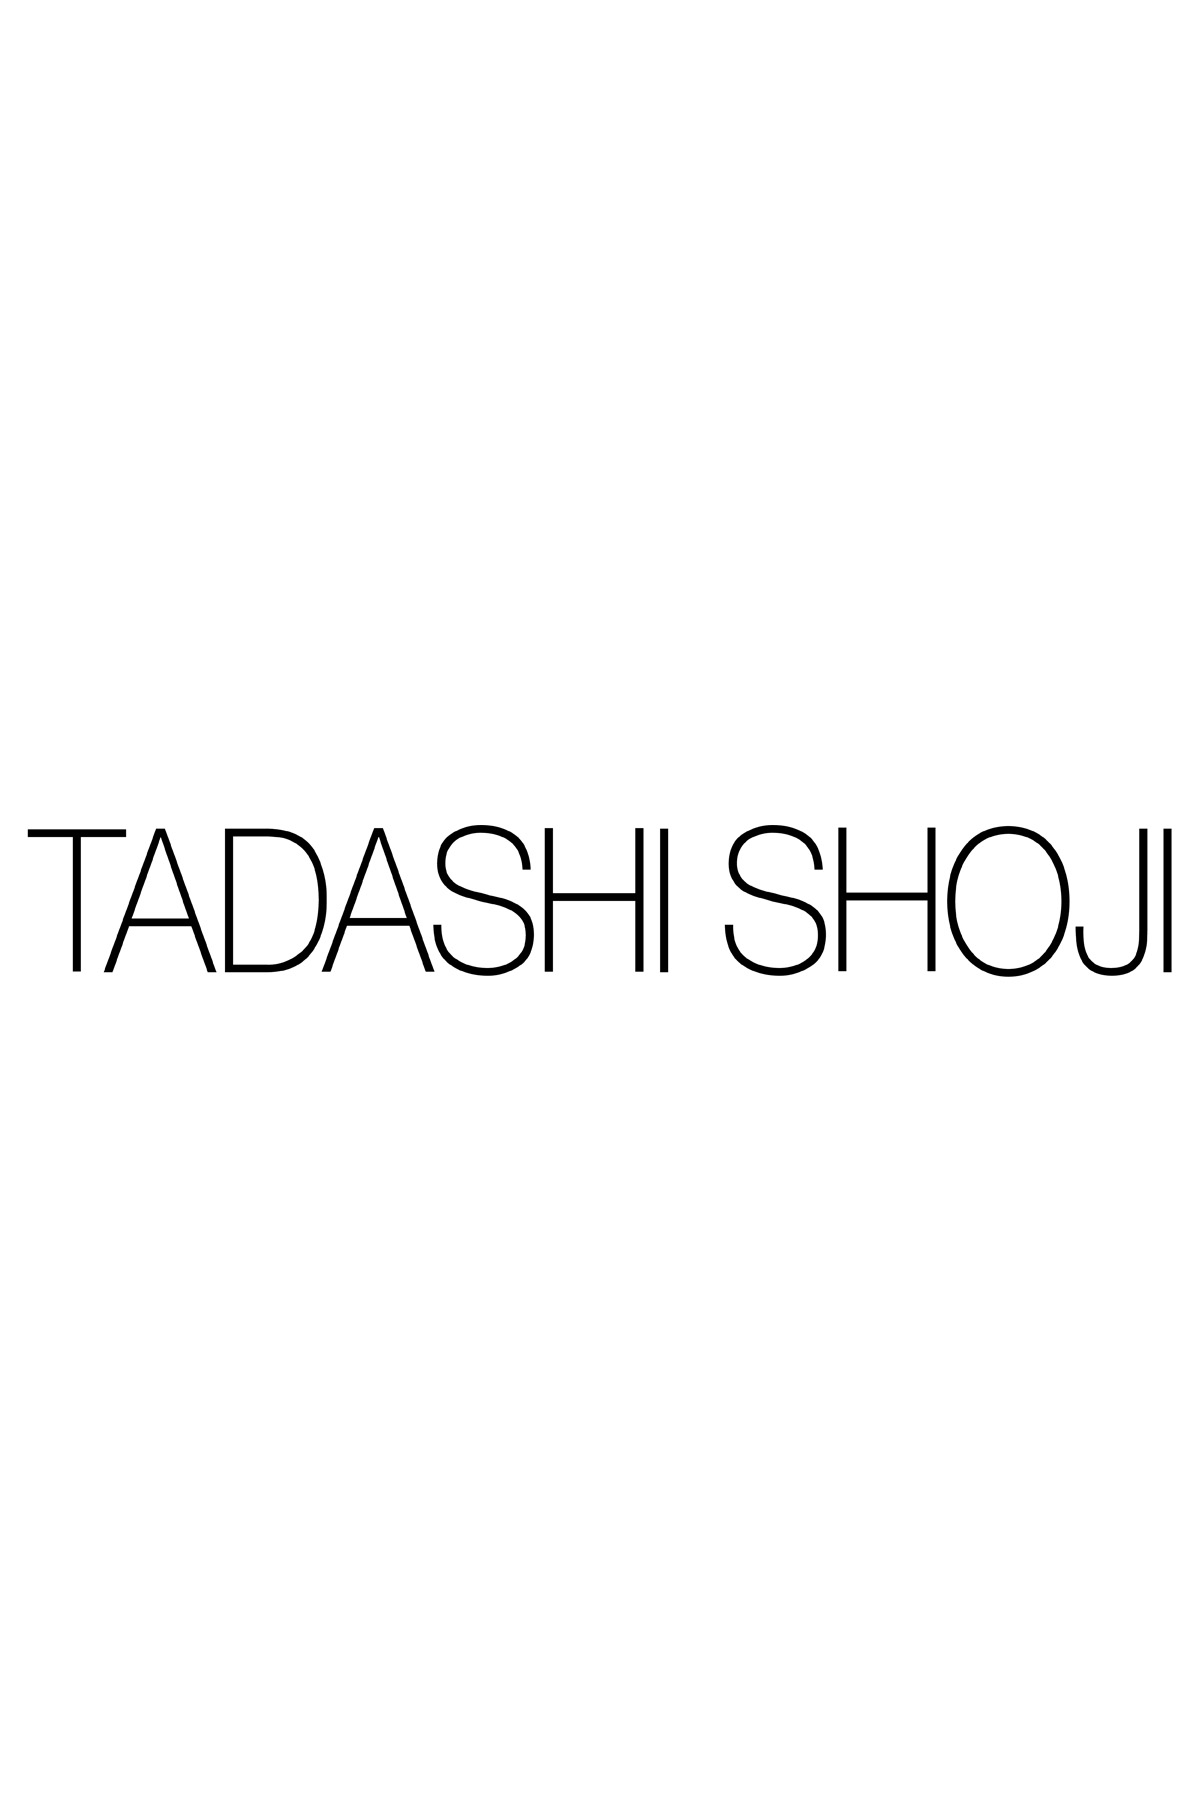 Stretch Satin Pencil Skirt in Black | Tadashi Shoji